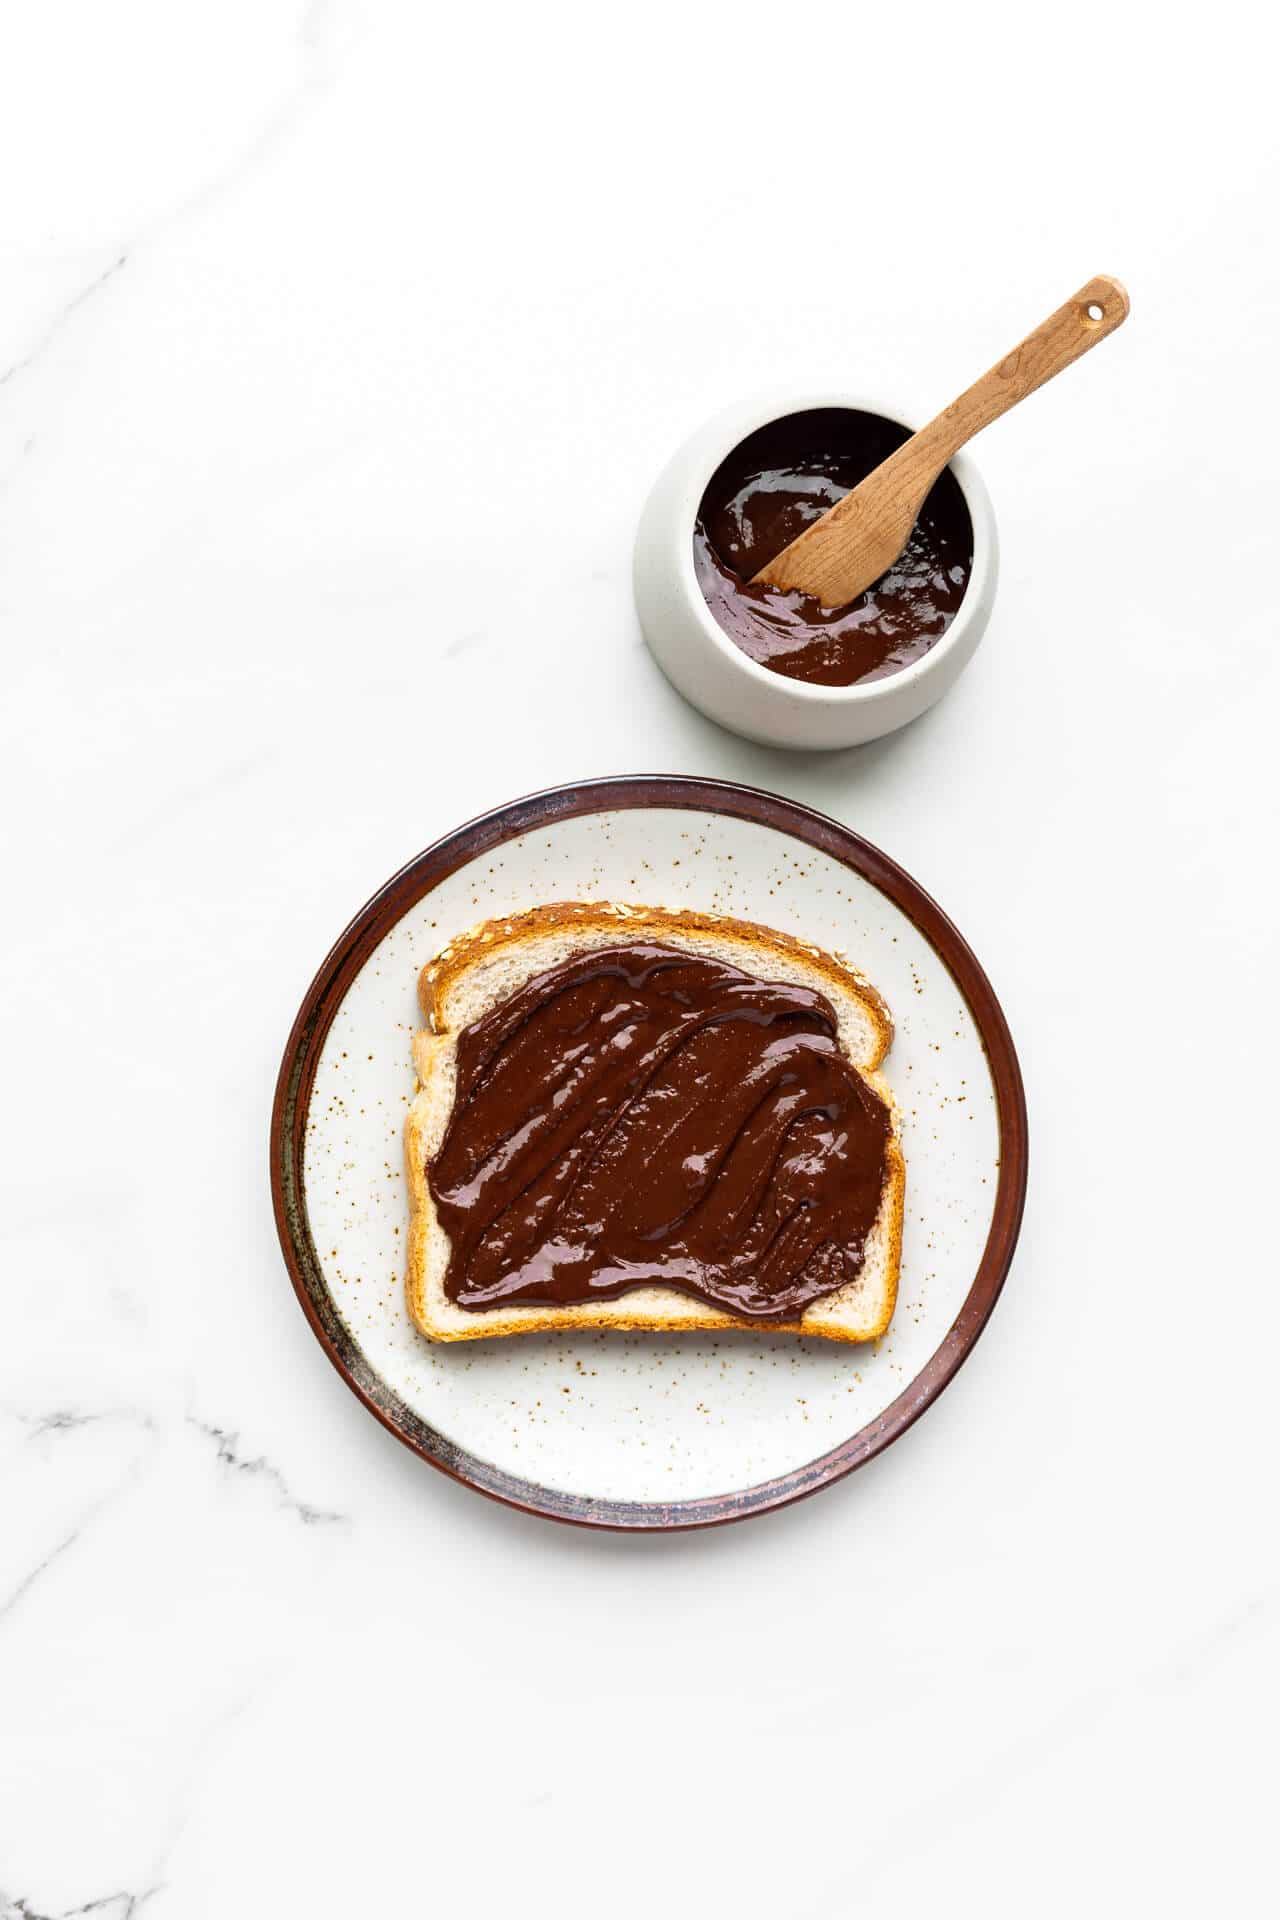 Nutella spread on white bread on a speckled ceramic plate with jar of homemade Nutella and wooden knife on side.